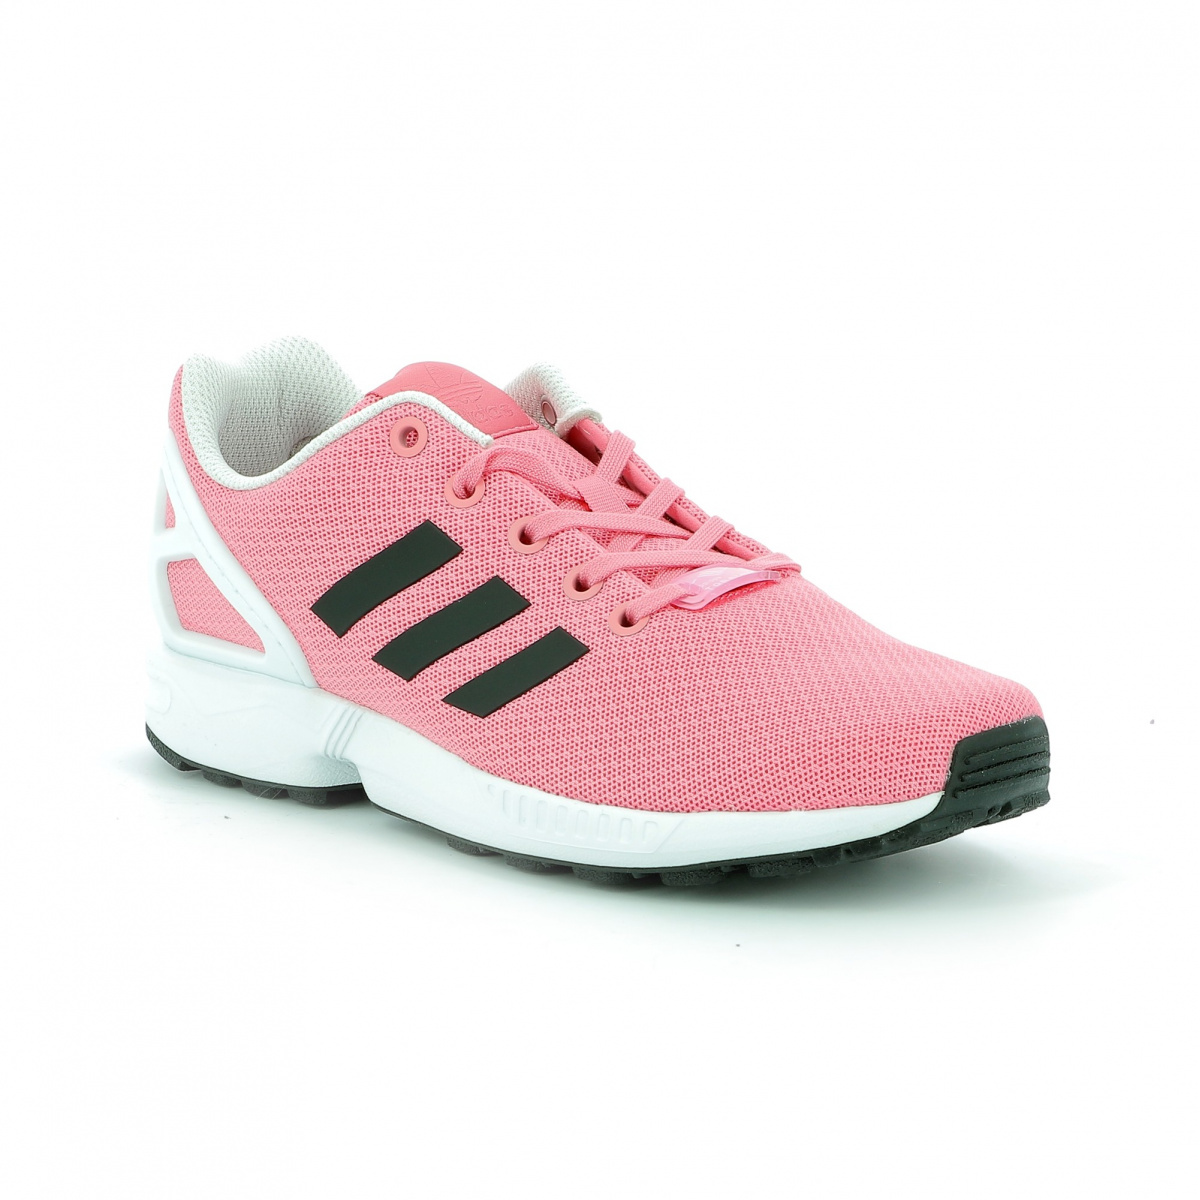 bas prix e6255 2840c ADIDAS ORIGINALS Baskets fille rose